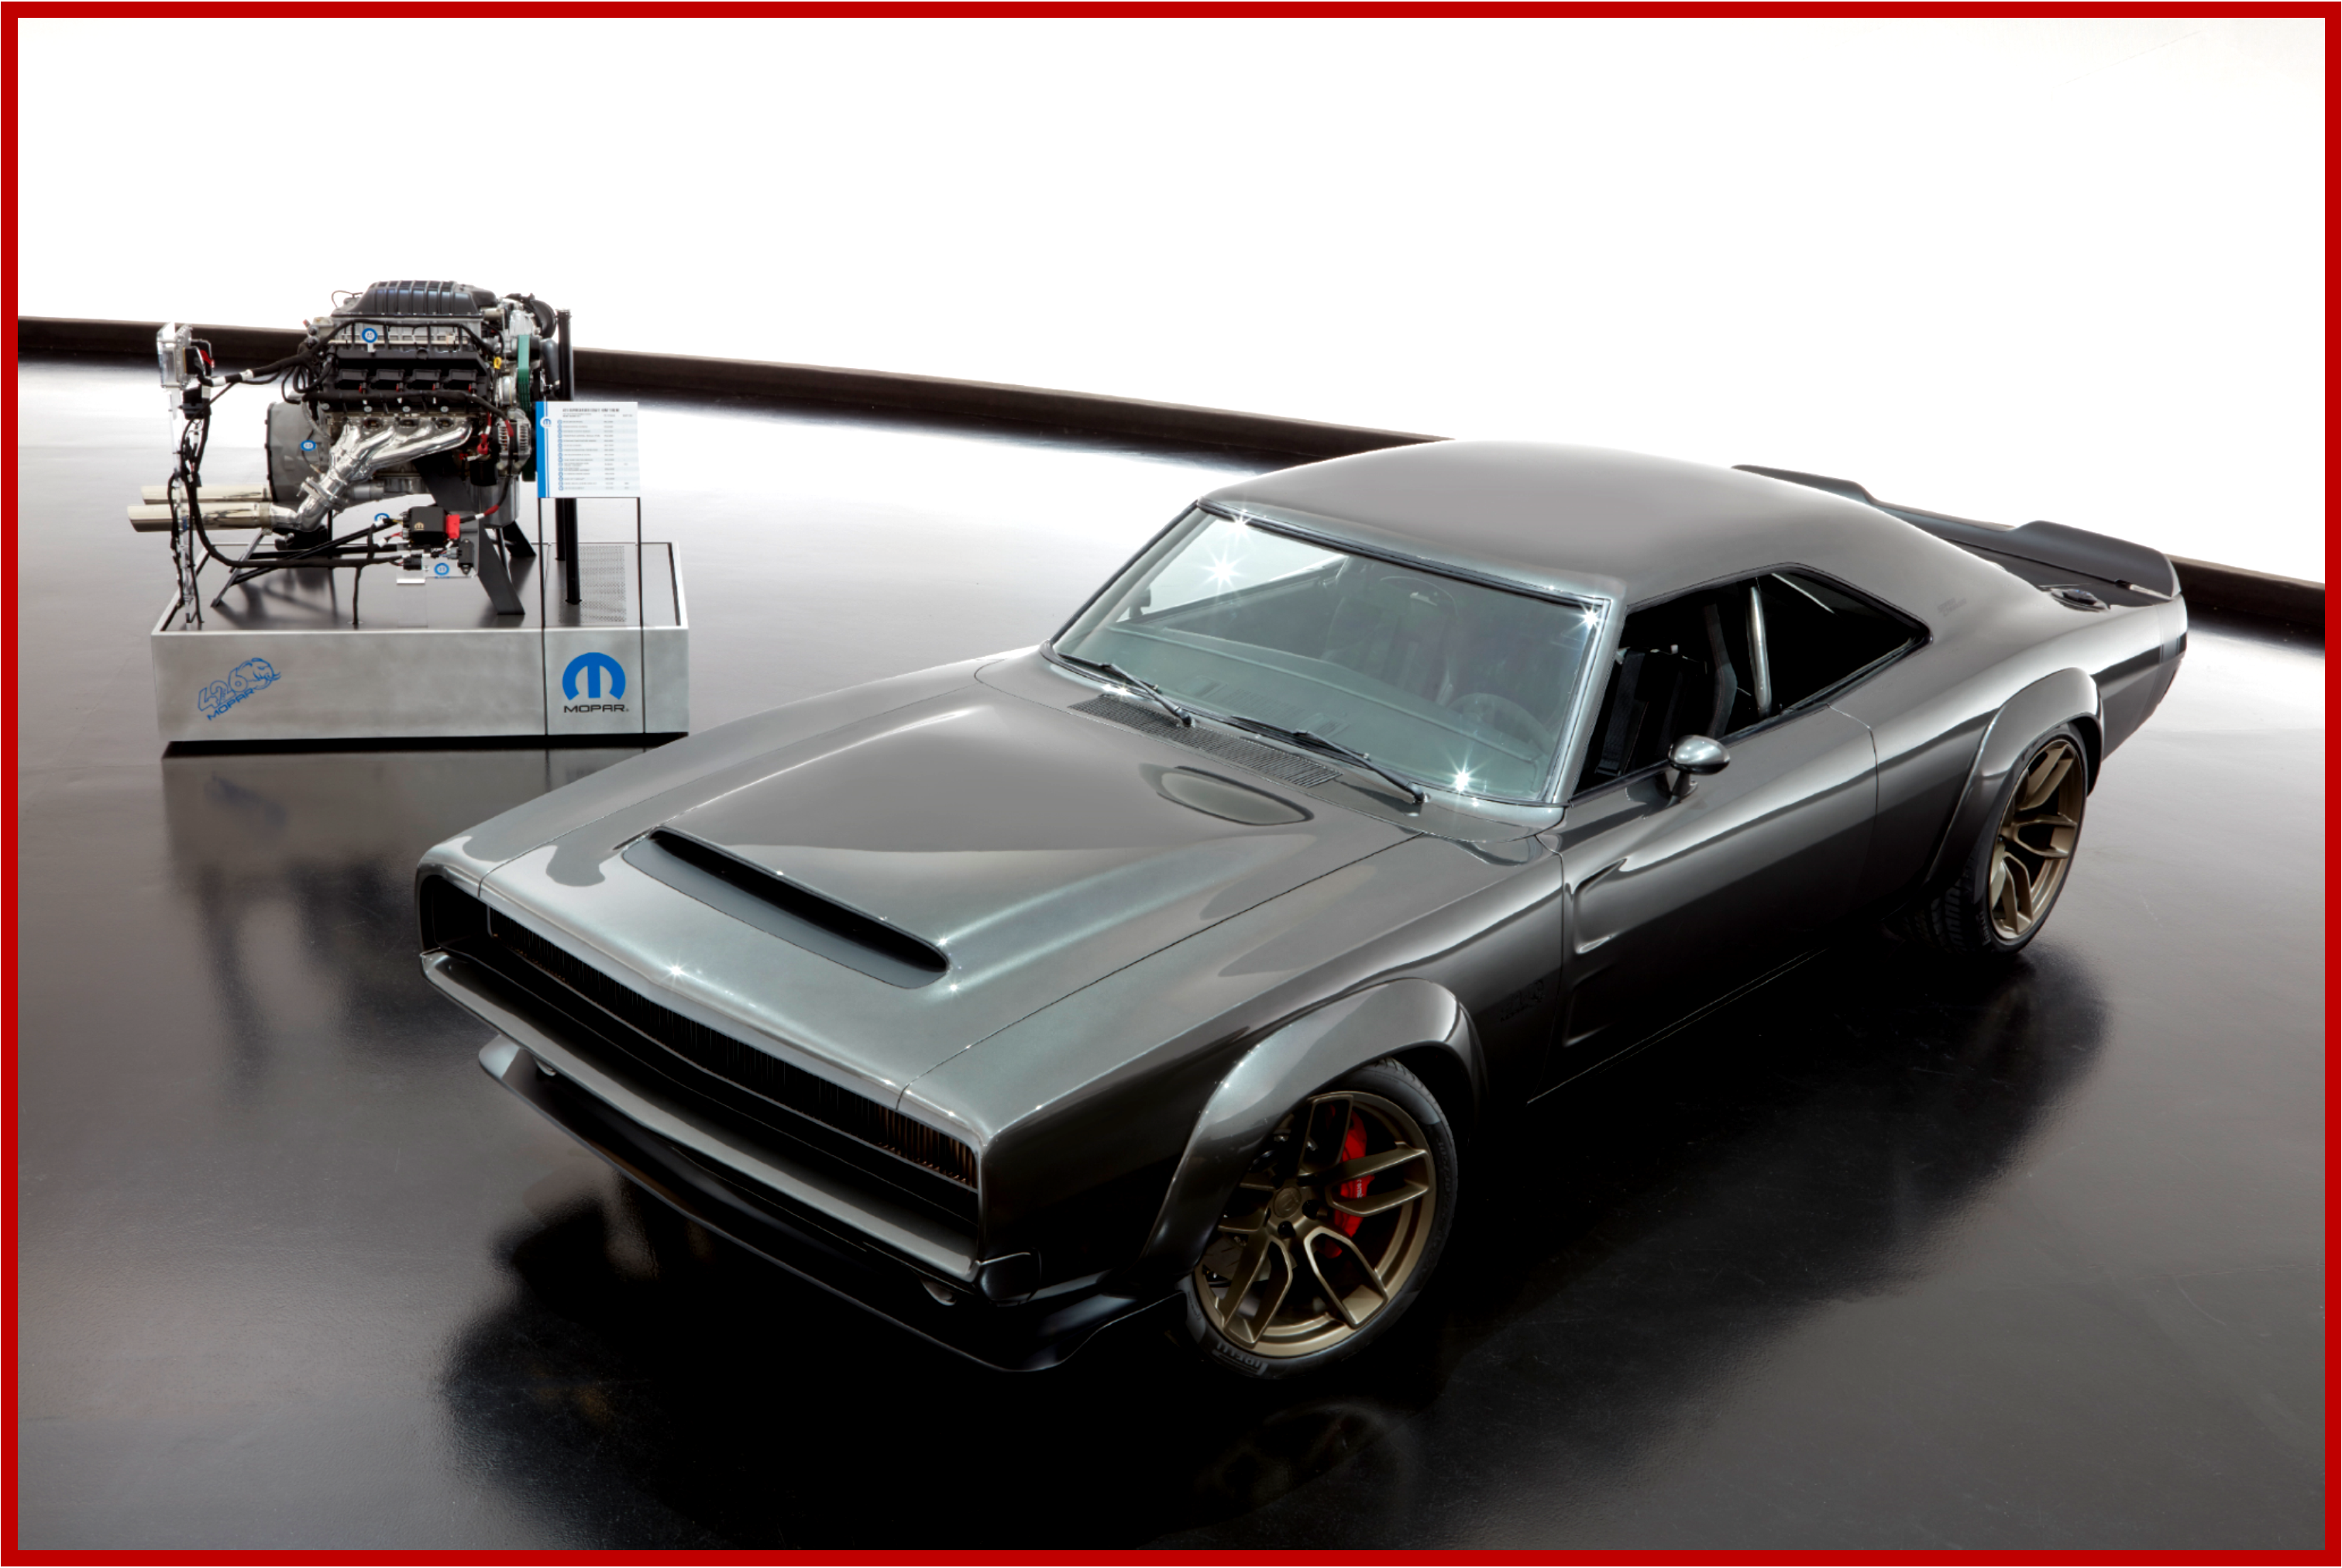 AutoInformed.com on Mopar at SEMA with 1000 Horsepower 426 Crate Hemi, Supercharger Concept